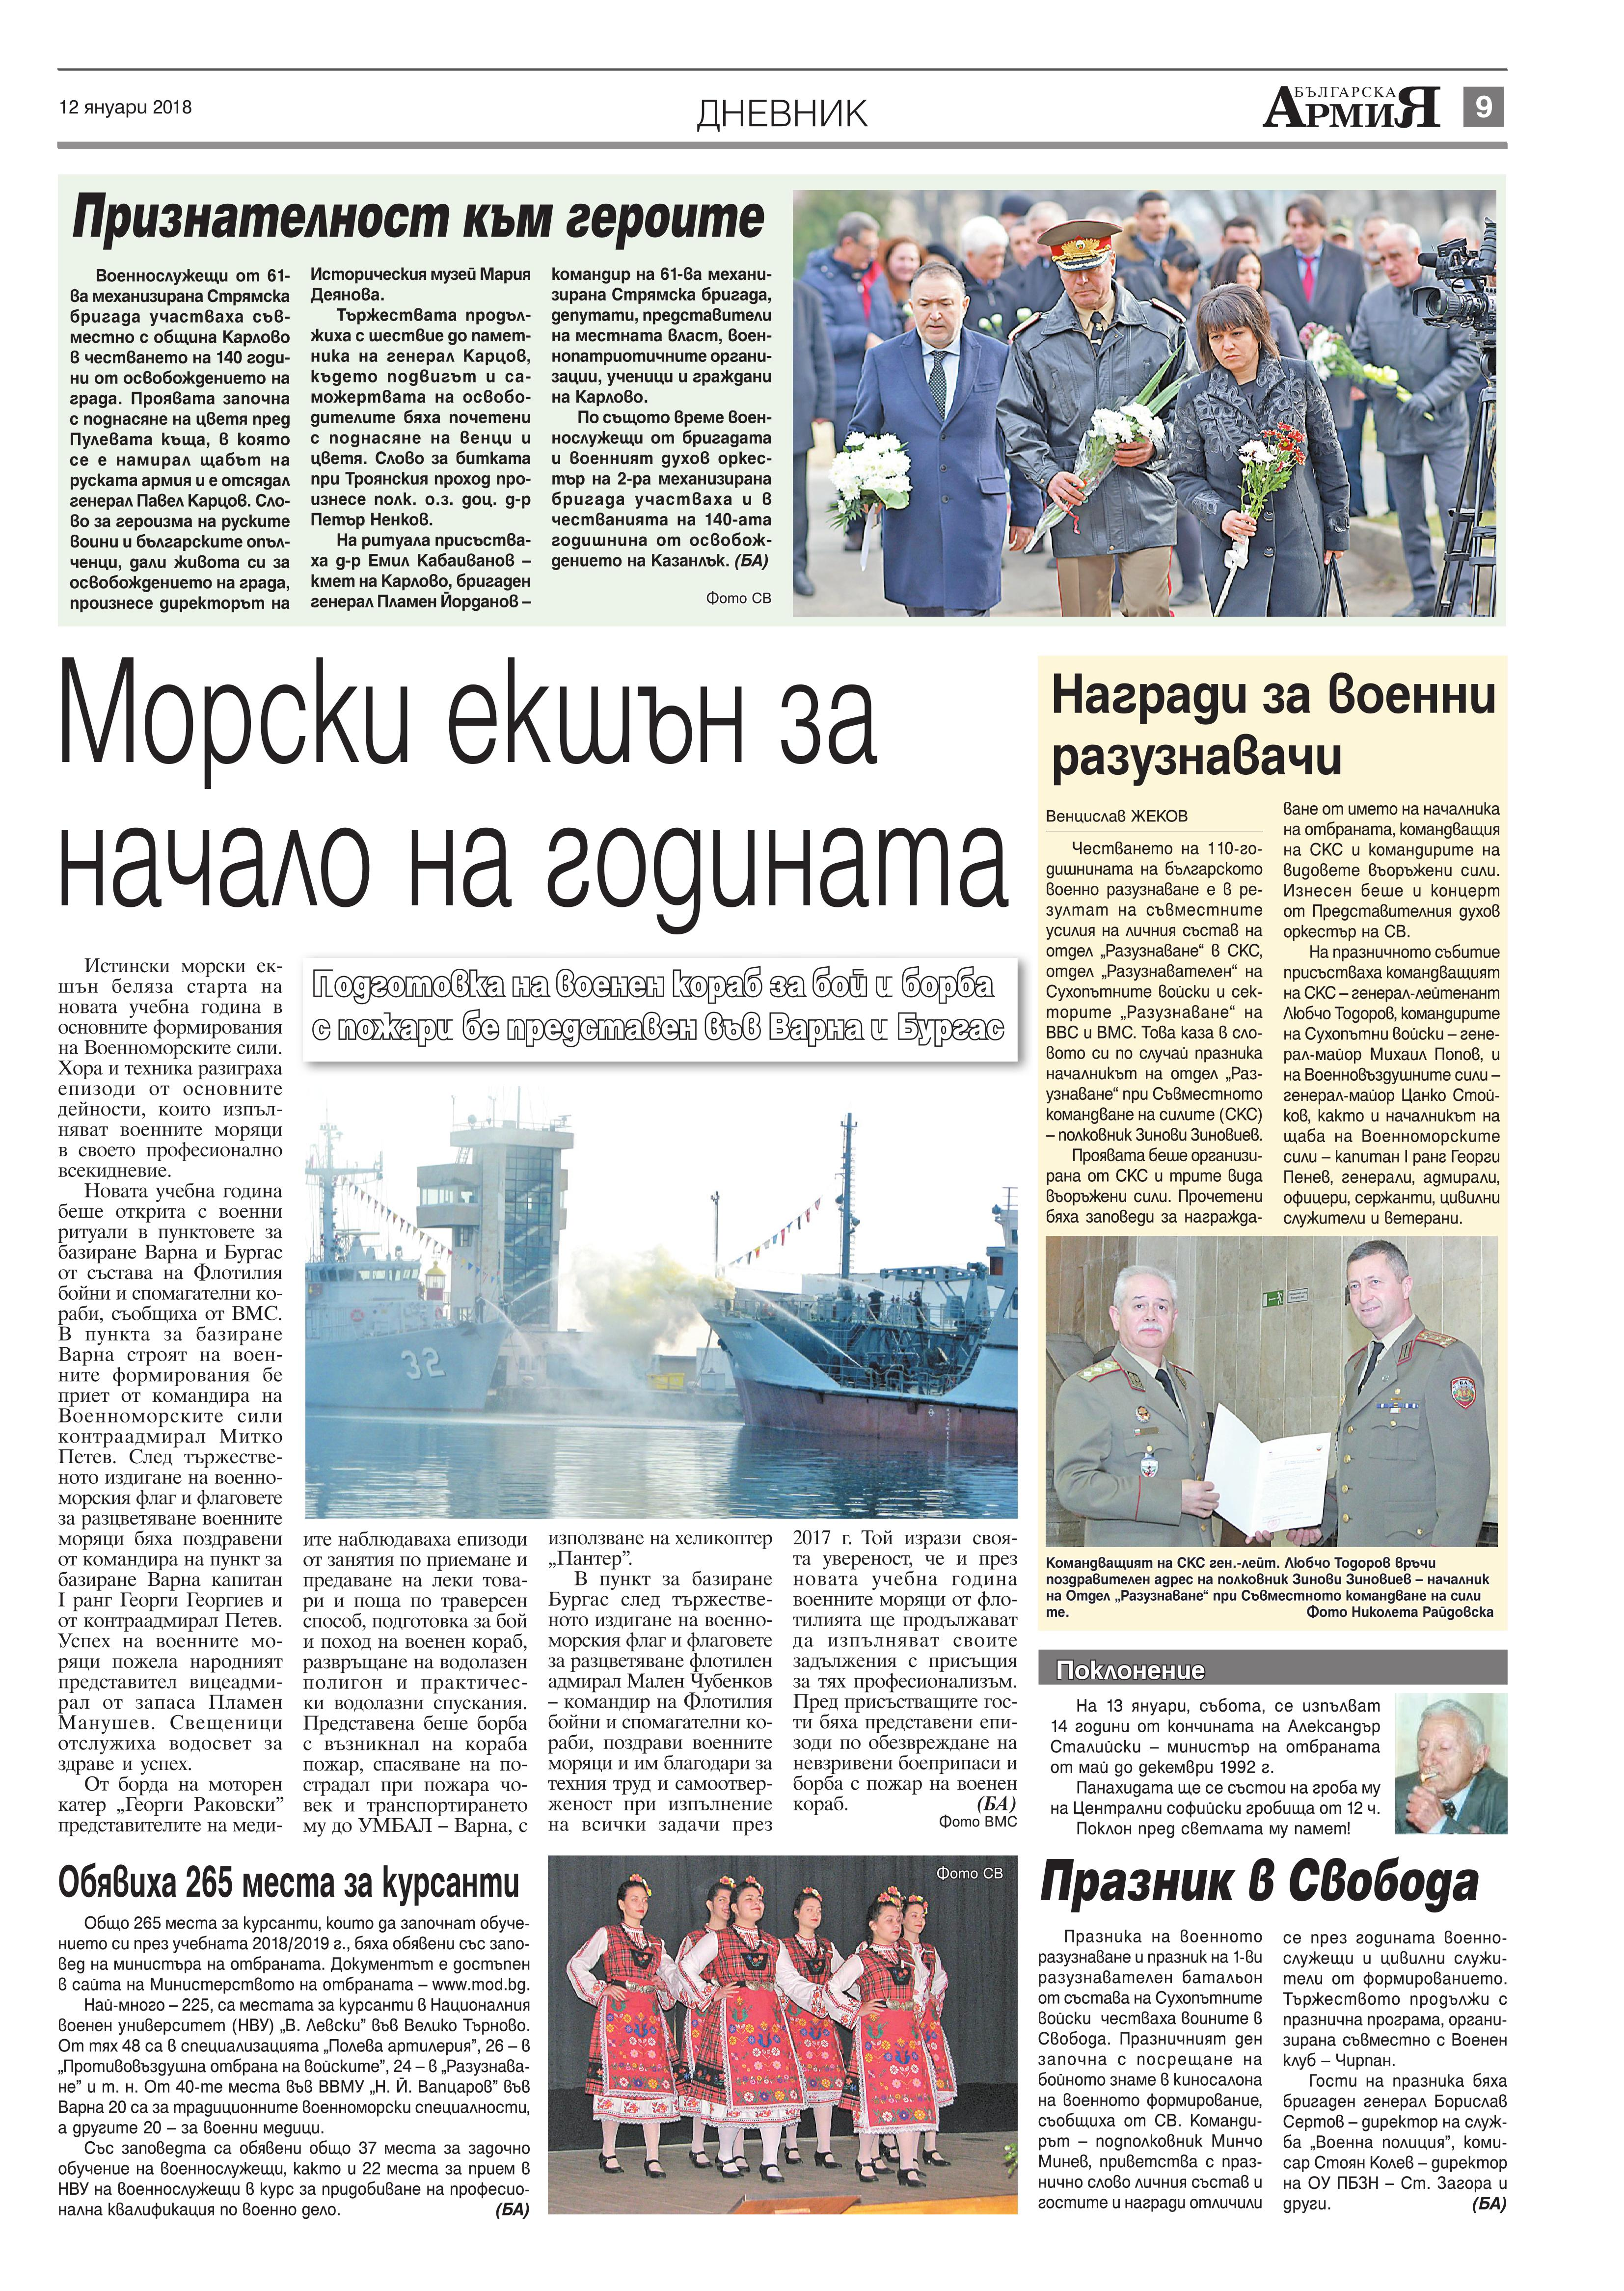 https://armymedia.bg/wp-content/uploads/2015/06/09.page1_-34.jpg